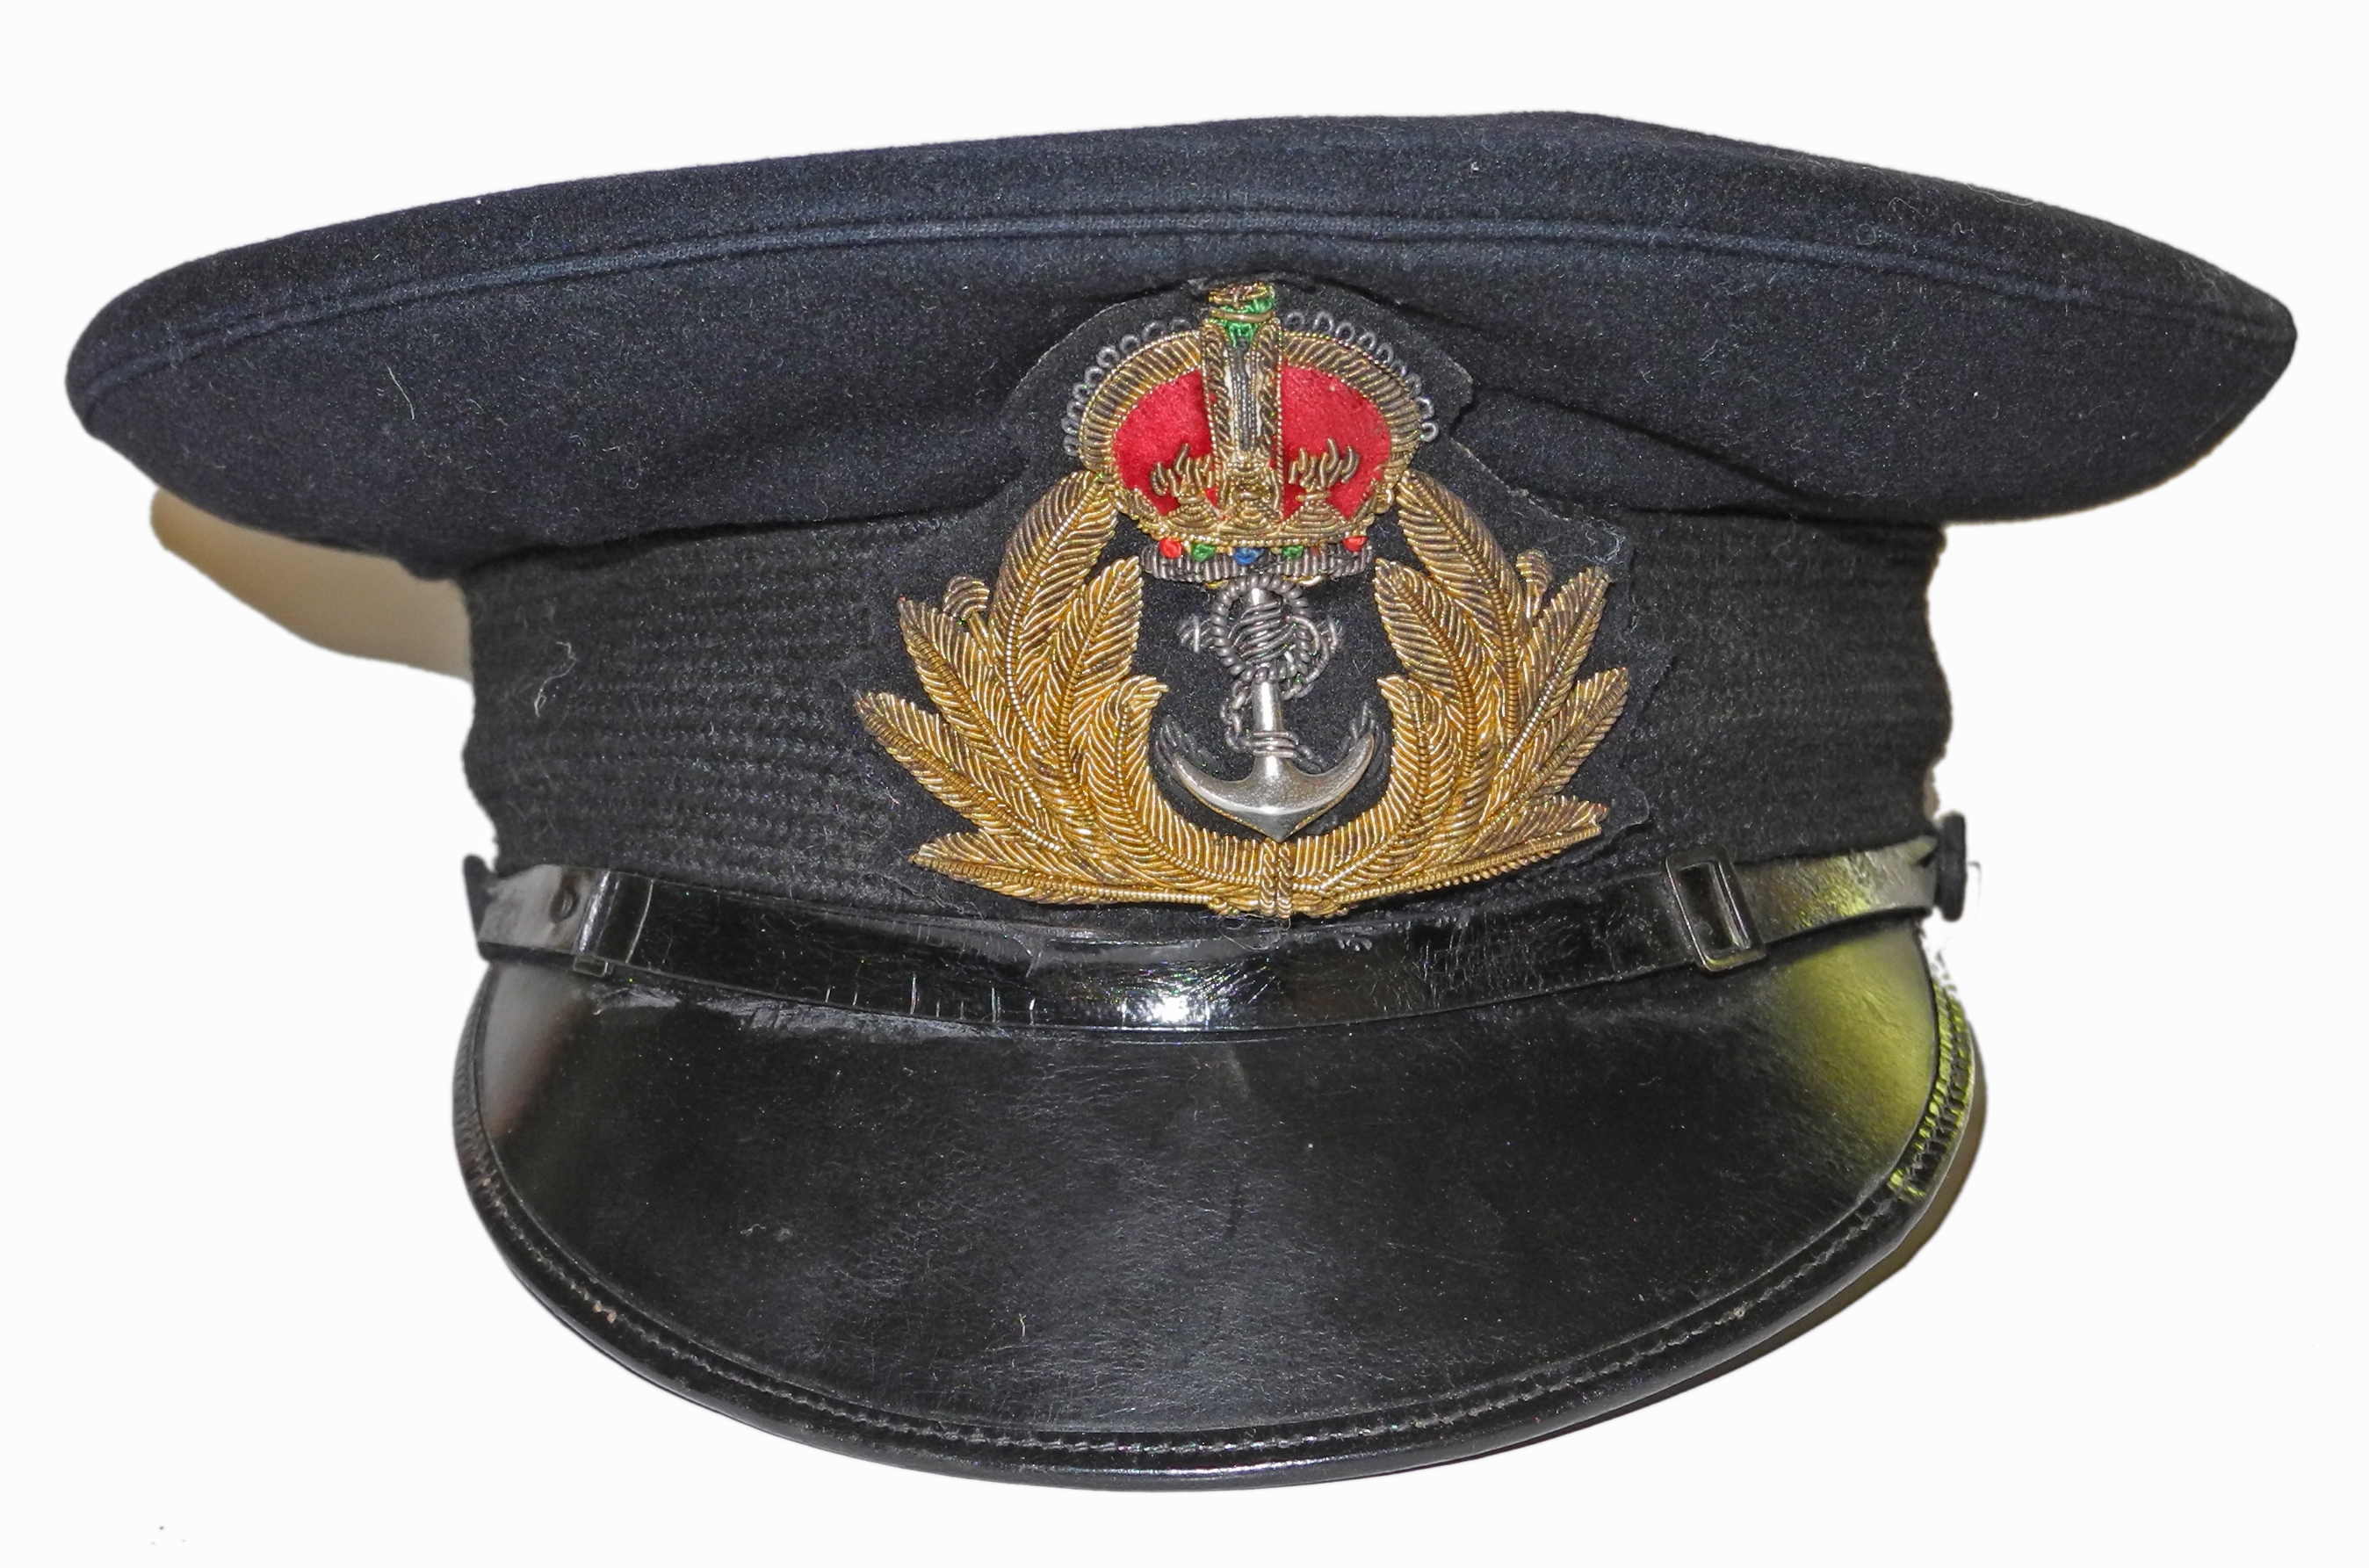 WWII Royal Navy officer's cap